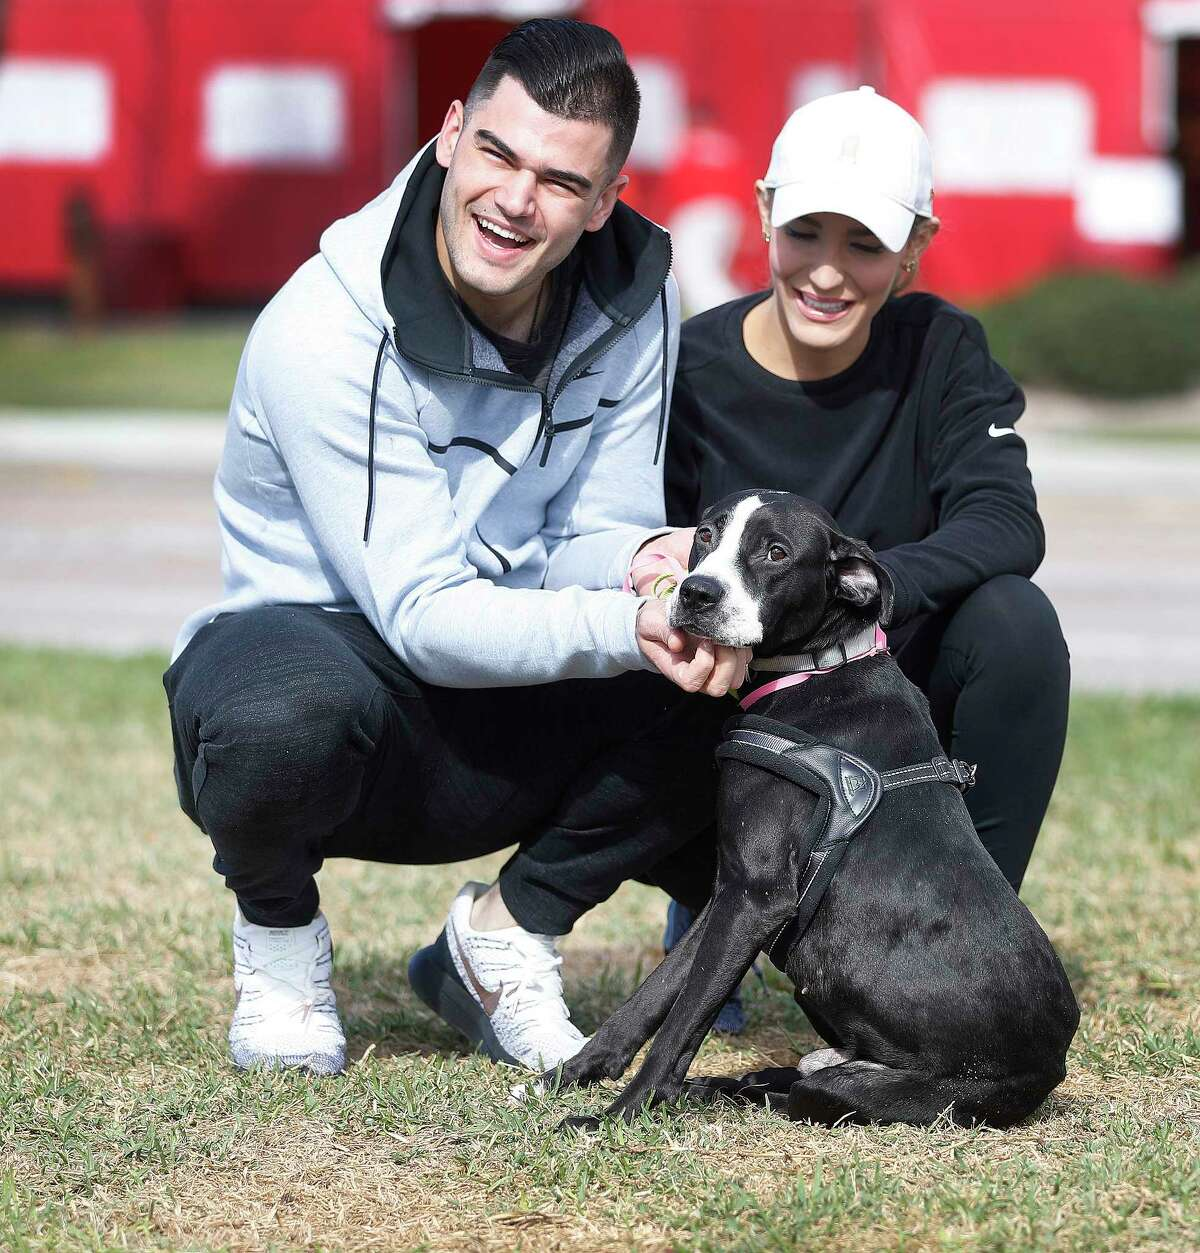 Houston Astros pitcher Lance McCullers Jr. and his wife, Kara, with